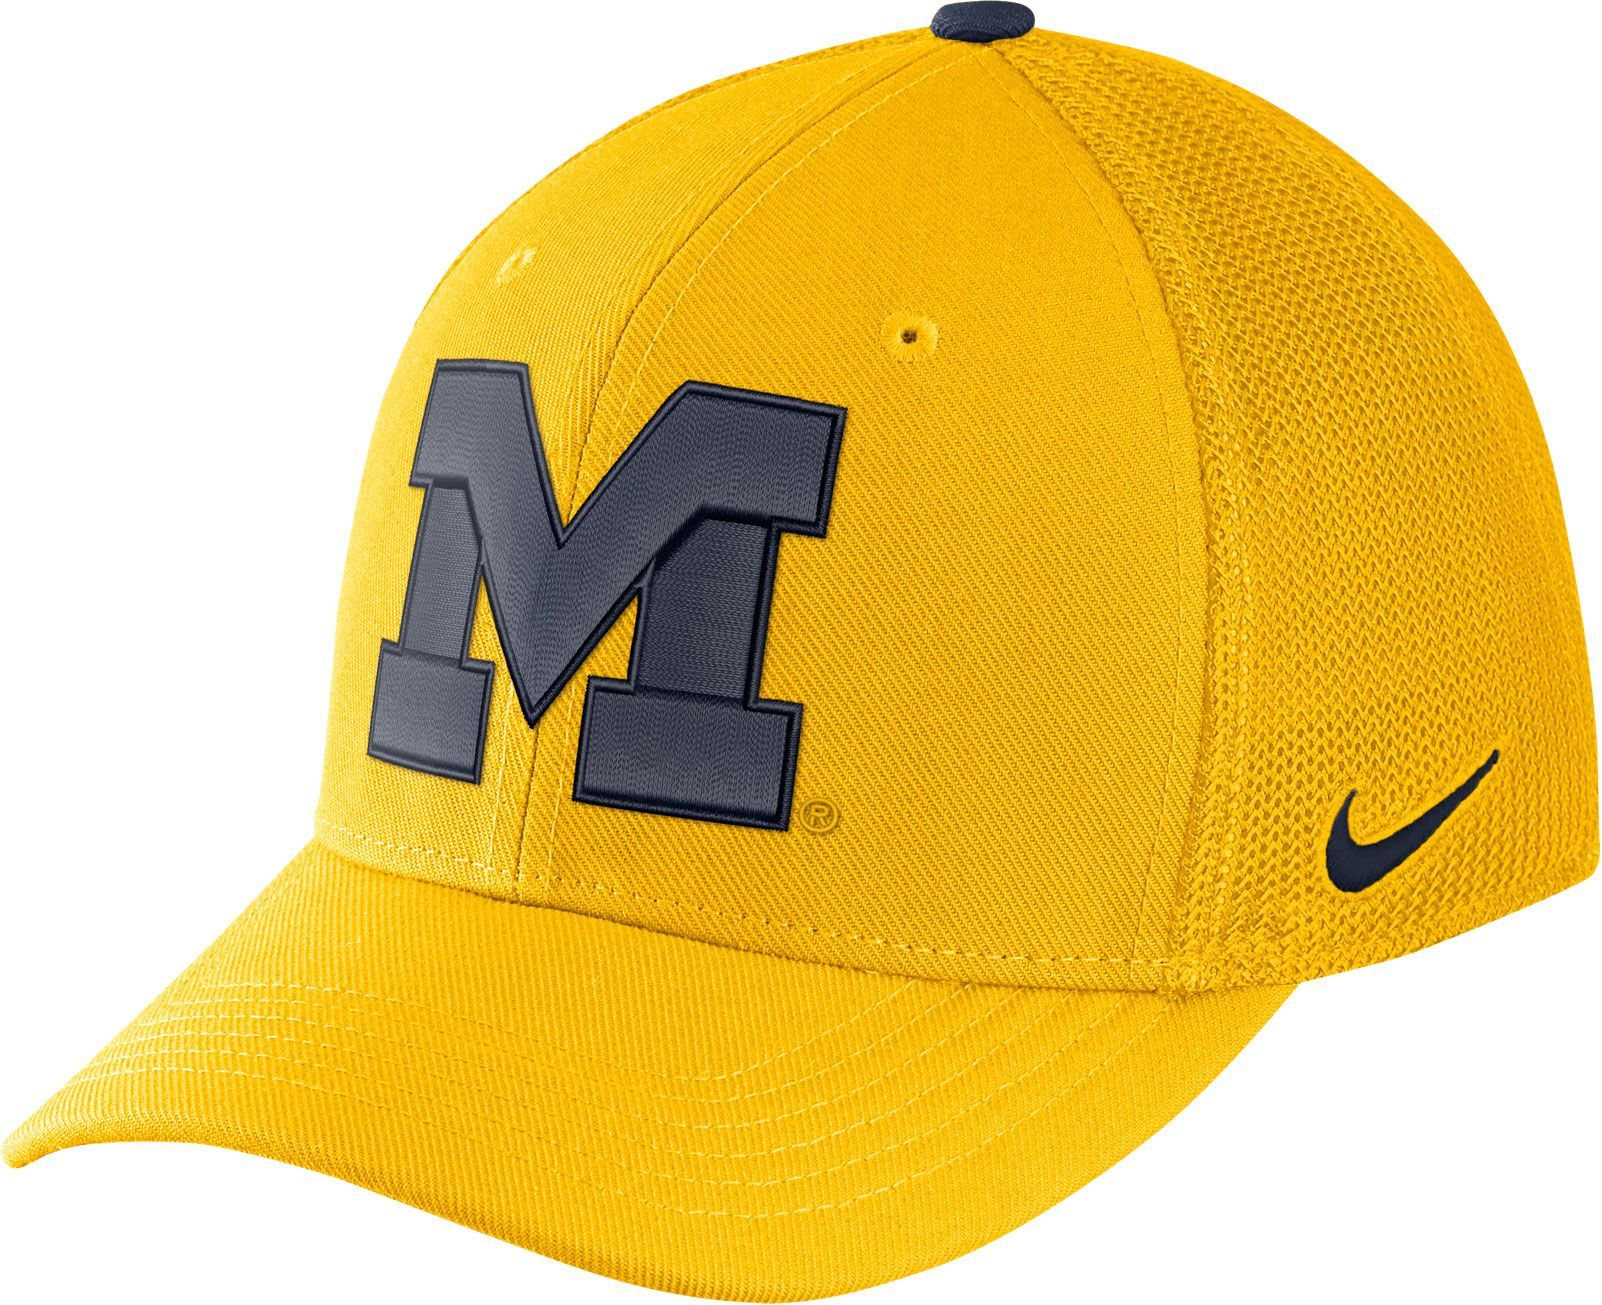 sports shoes 0c86b 4081b Nike Men s Michigan Wolverines Maize Aerobill Swoosh Flex Classic99 Hat,  Blue